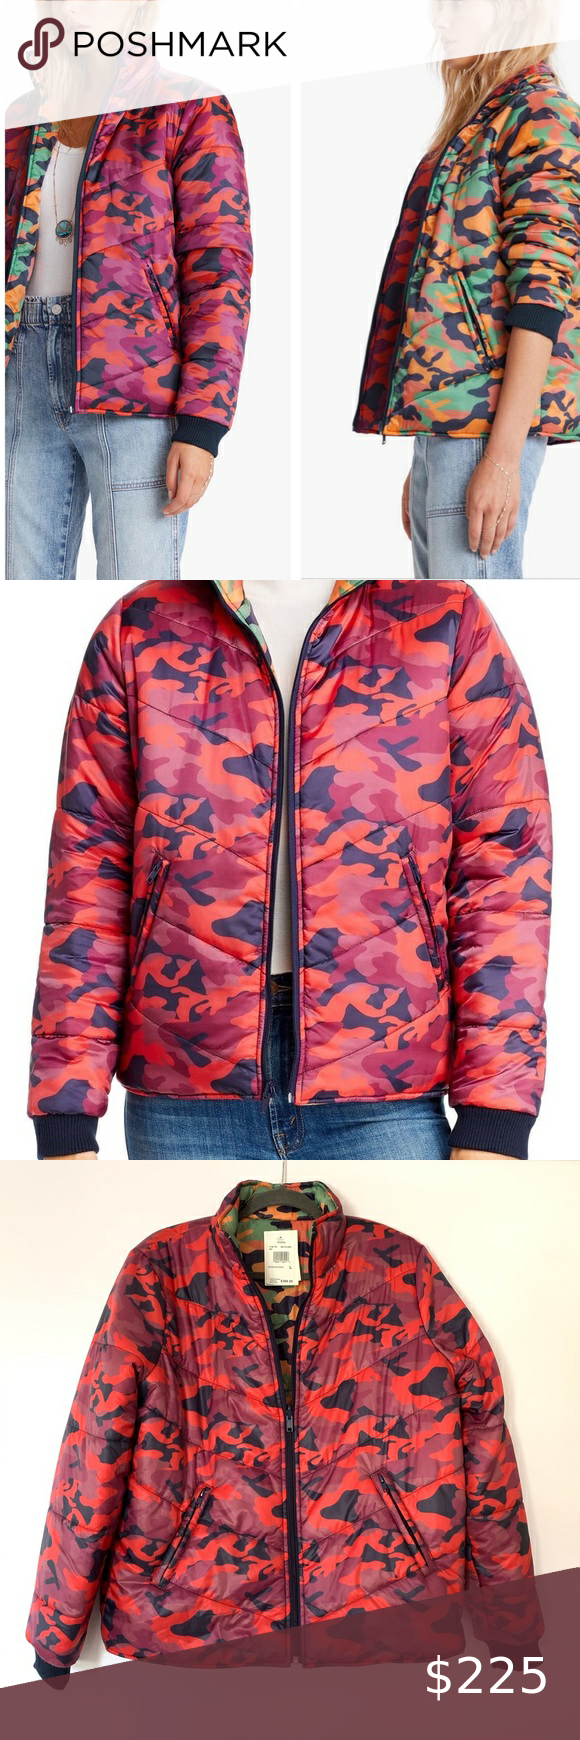 Sold Mother 2faced Reversible Camo Puffer Jacket Camo Puffer Jacket Puffer Jackets Jackets [ 1740 x 580 Pixel ]